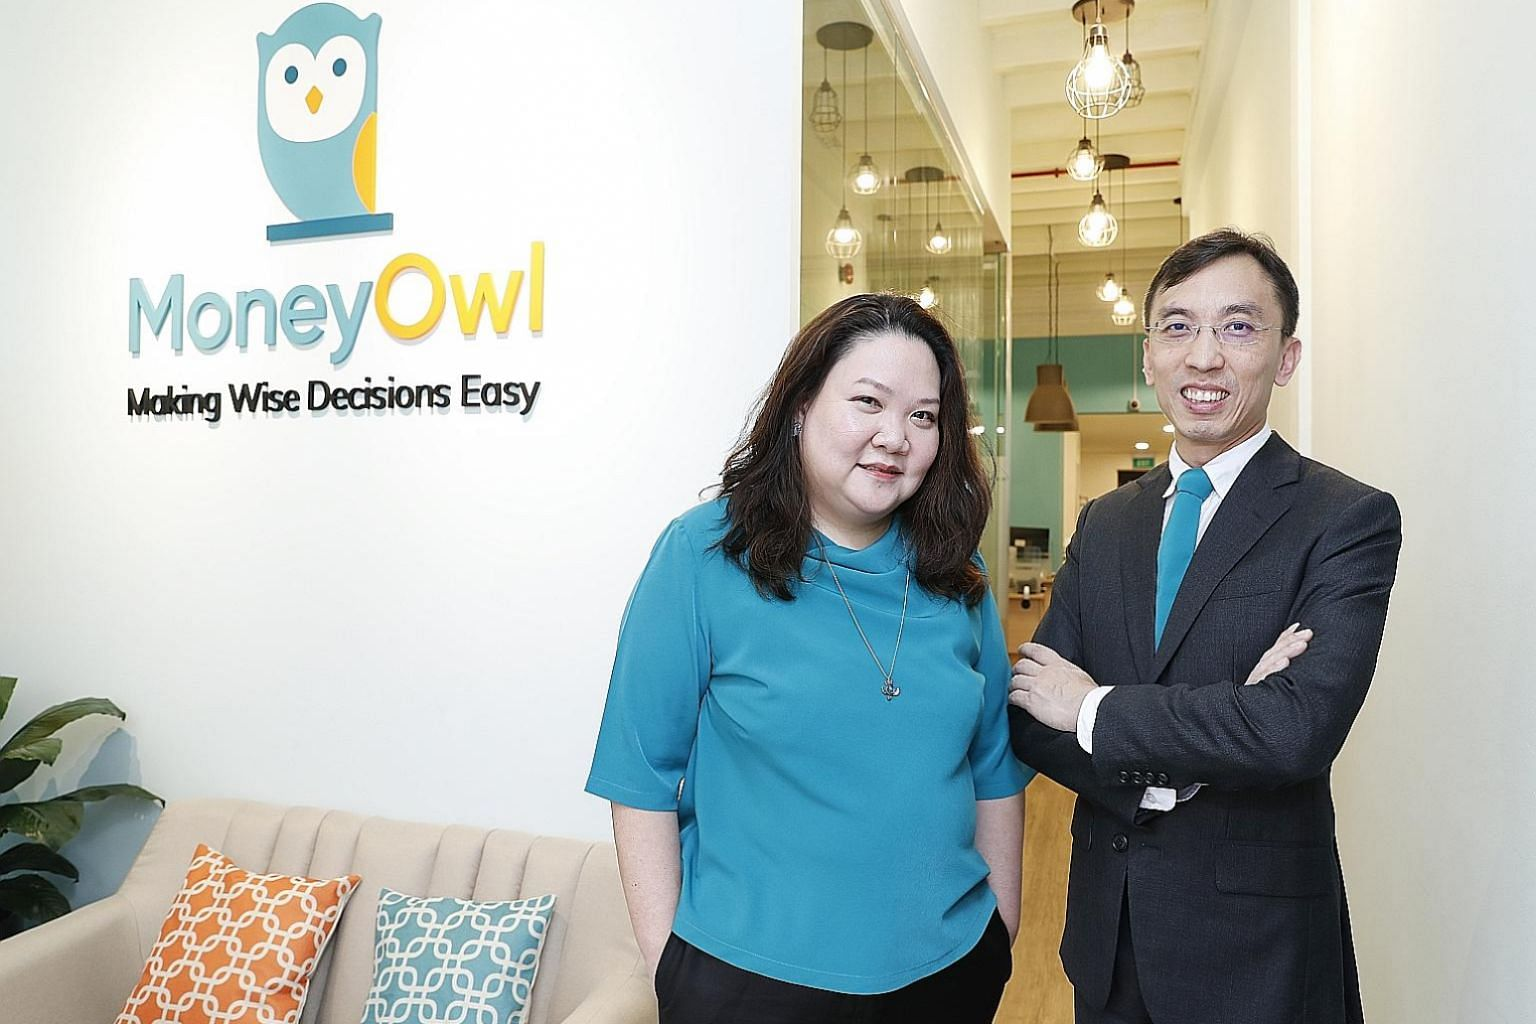 Chief executive Chuin Ting Weber and executive director Christopher Tan from MoneyOwl, which provides bionic financial advisory. Bionic advisory uses robo-advisers - with salaried human advisers - to deliver advice.